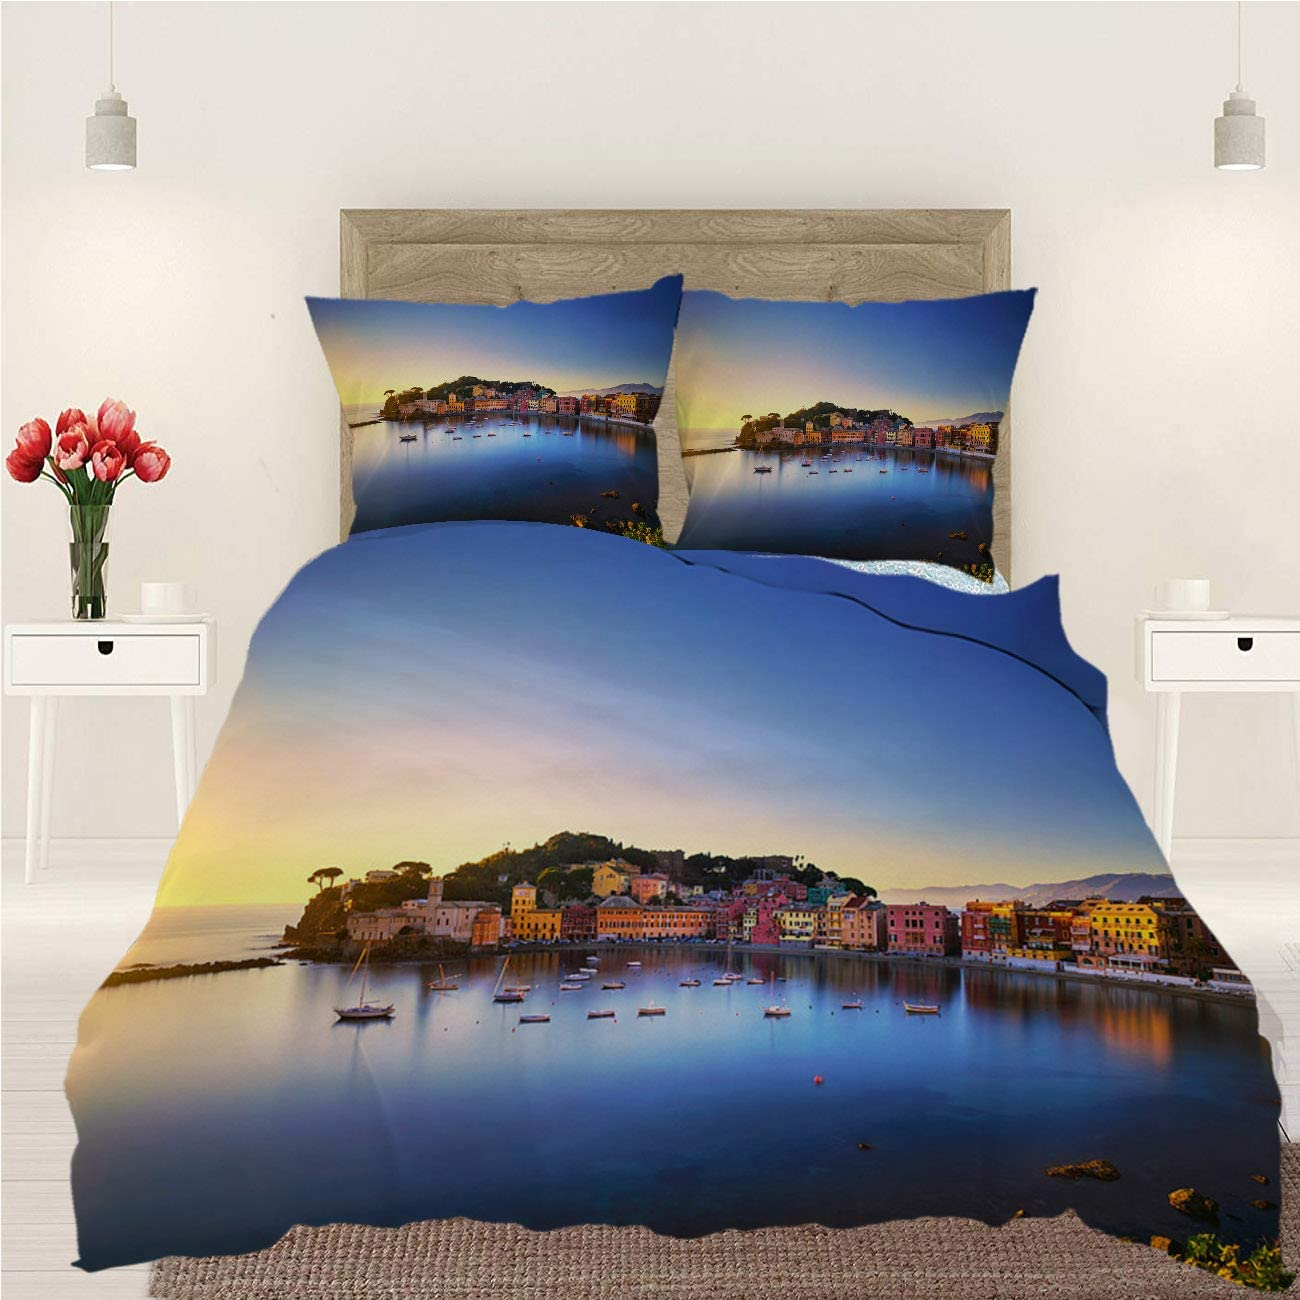 BEISISS Sunset 3 Piece Bedding Duvet Cover Set,Sestri Levante Silence Bay Sea Harbor Beach View On Sunset,Luxury Quality Soft Lightweight Durable Bedding Sets,Full